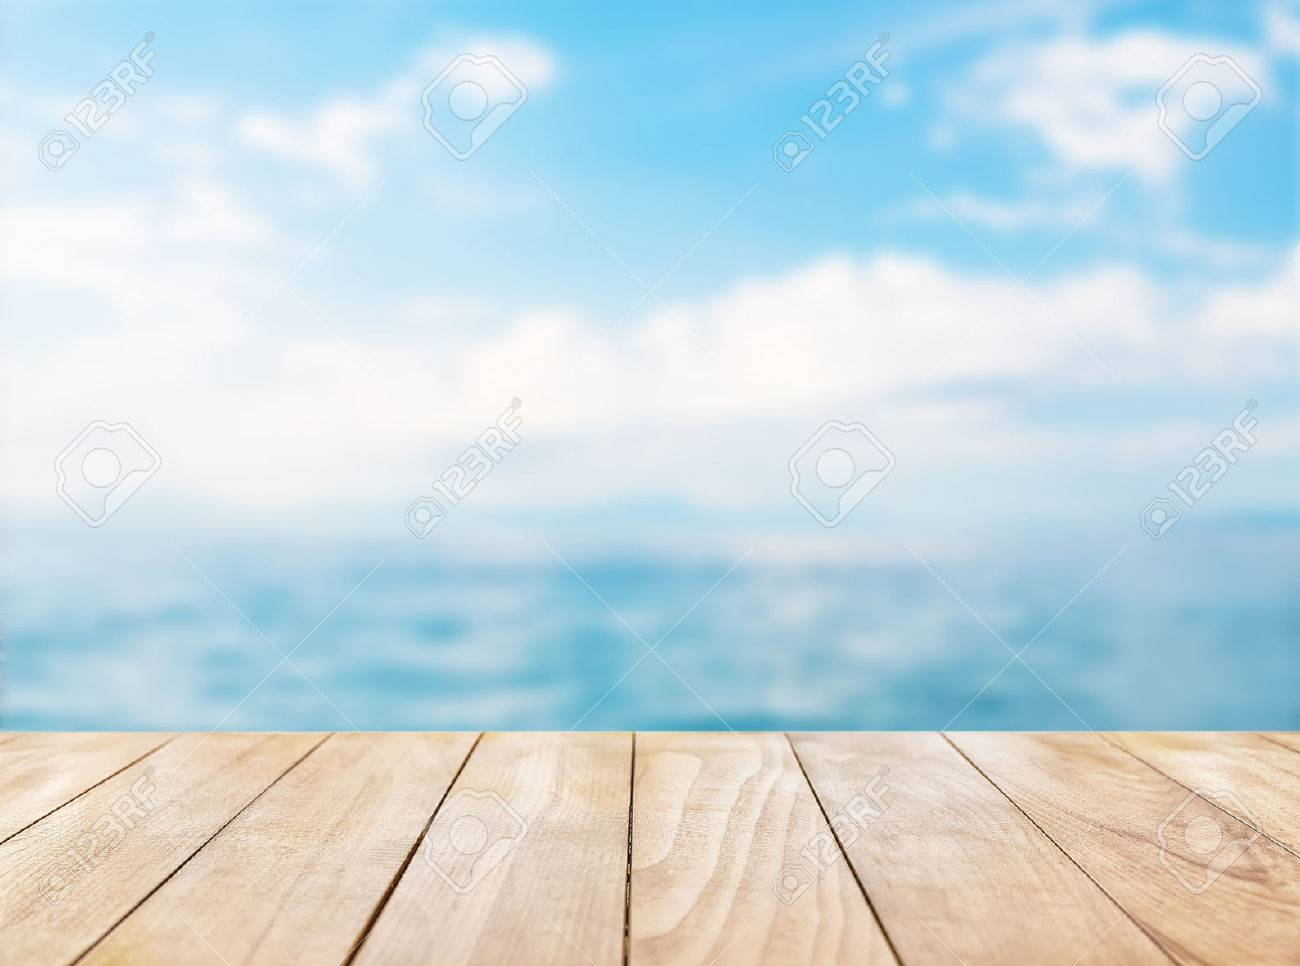 Wooden table top on blue sea and white sand beach background - 58556867